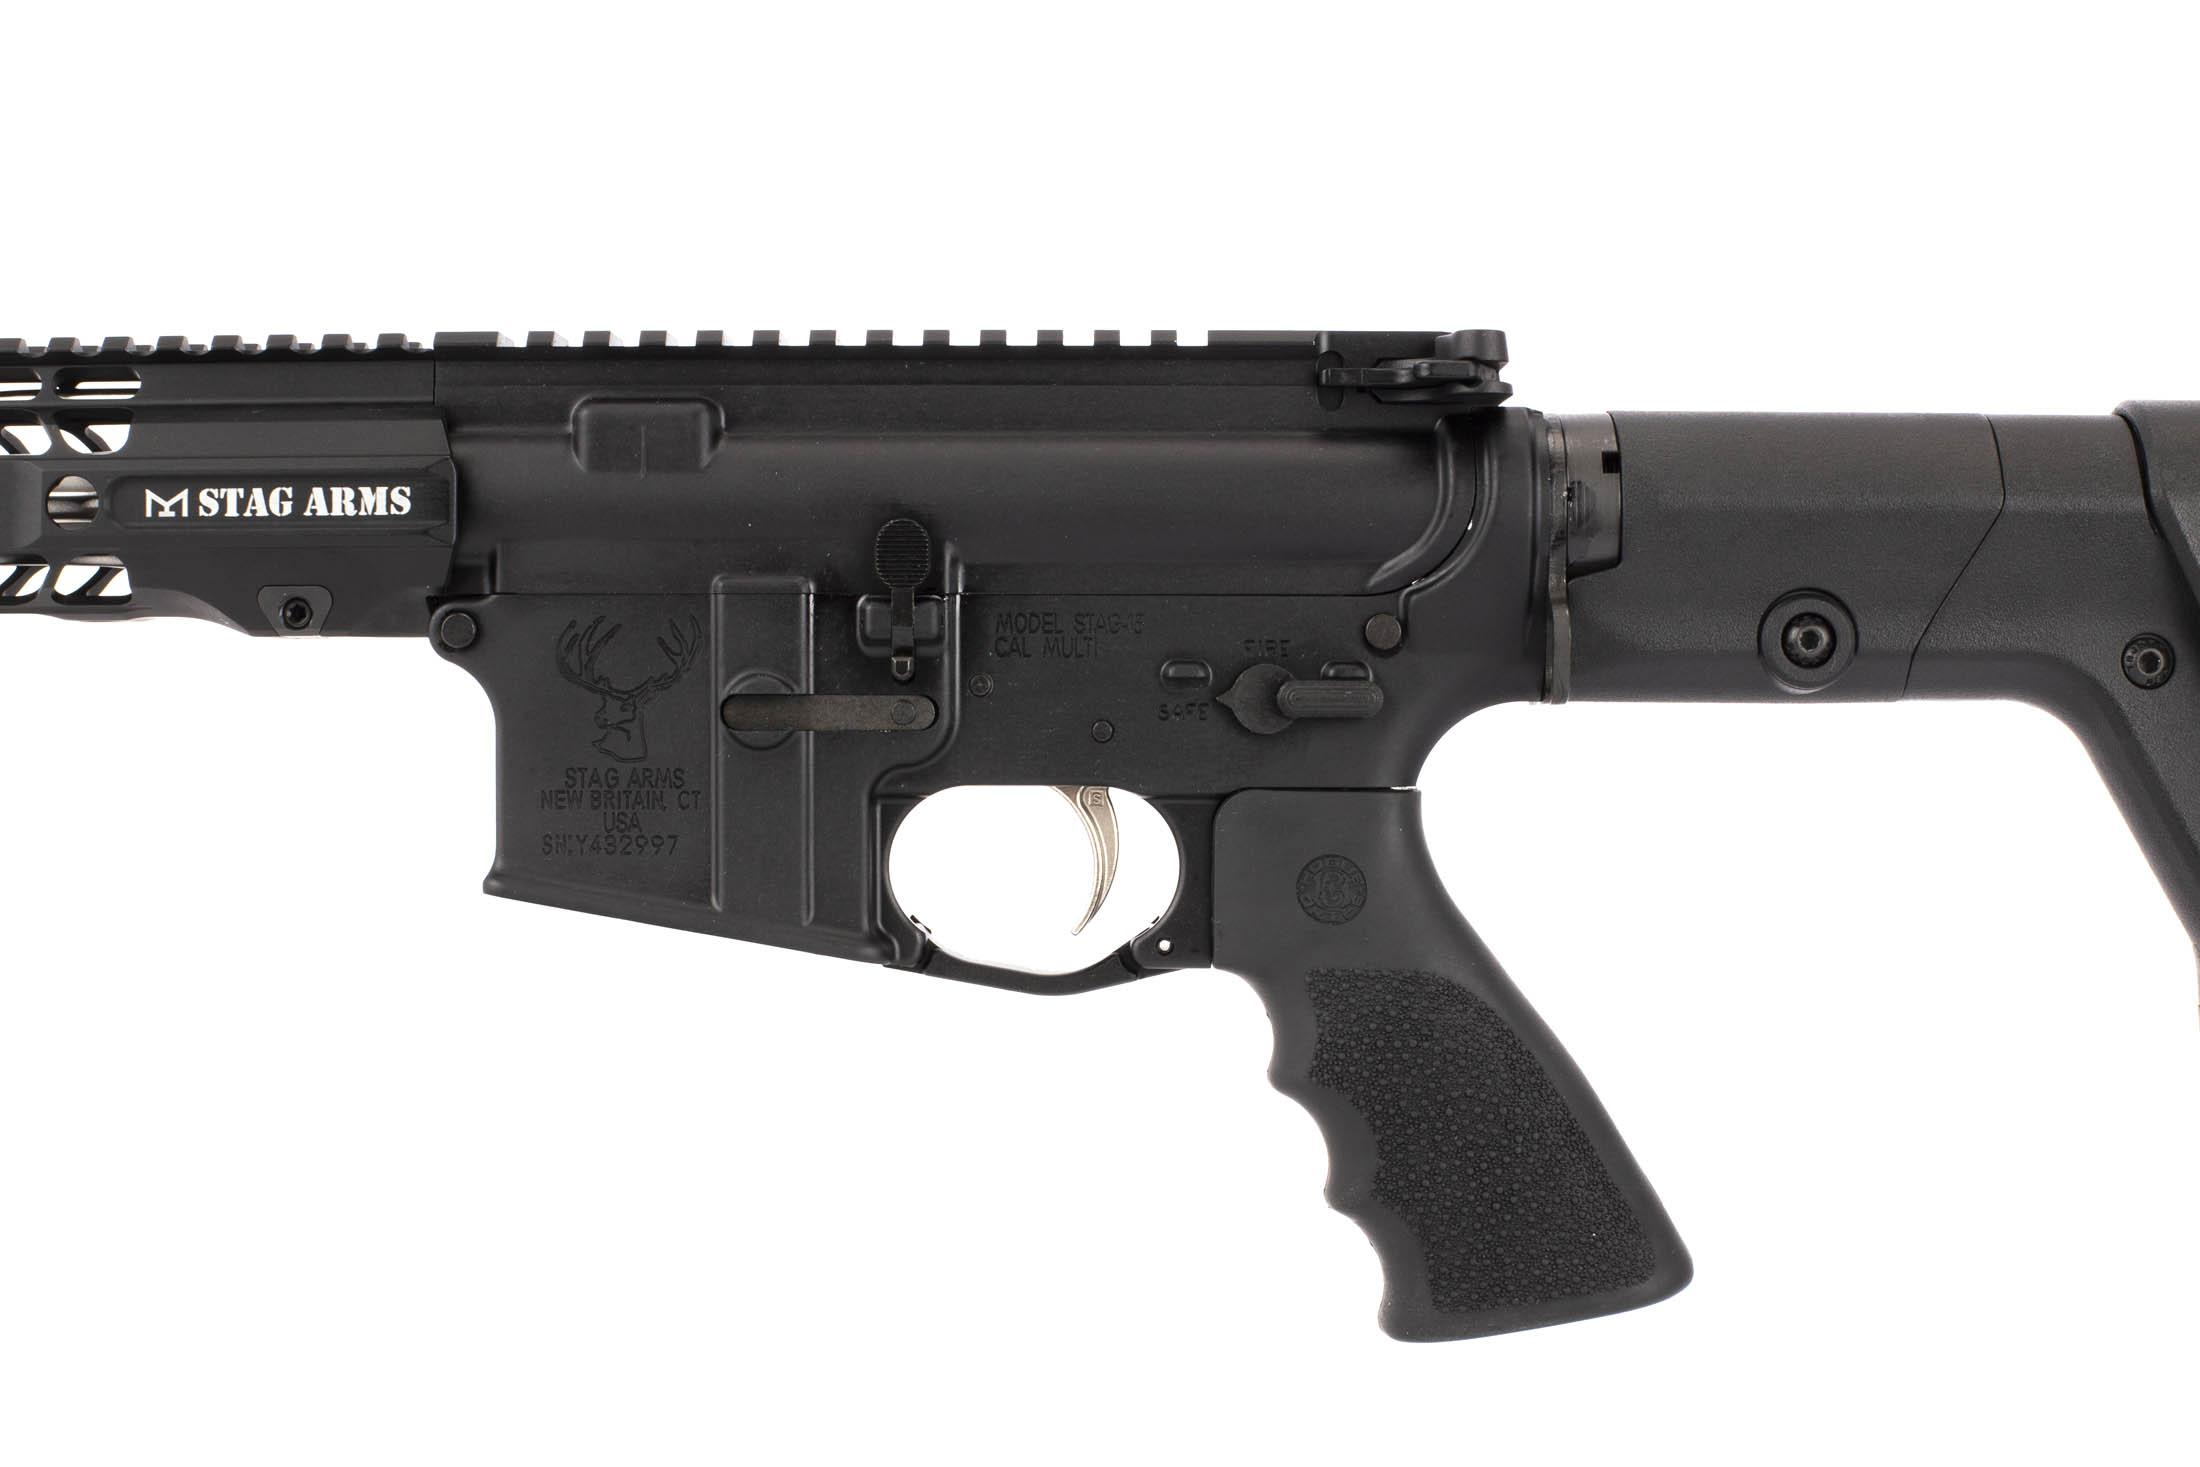 Stag Arms 18in .224 Valkyrie complete rifle with extended trigger guard and reliable MIL-SPEC components.